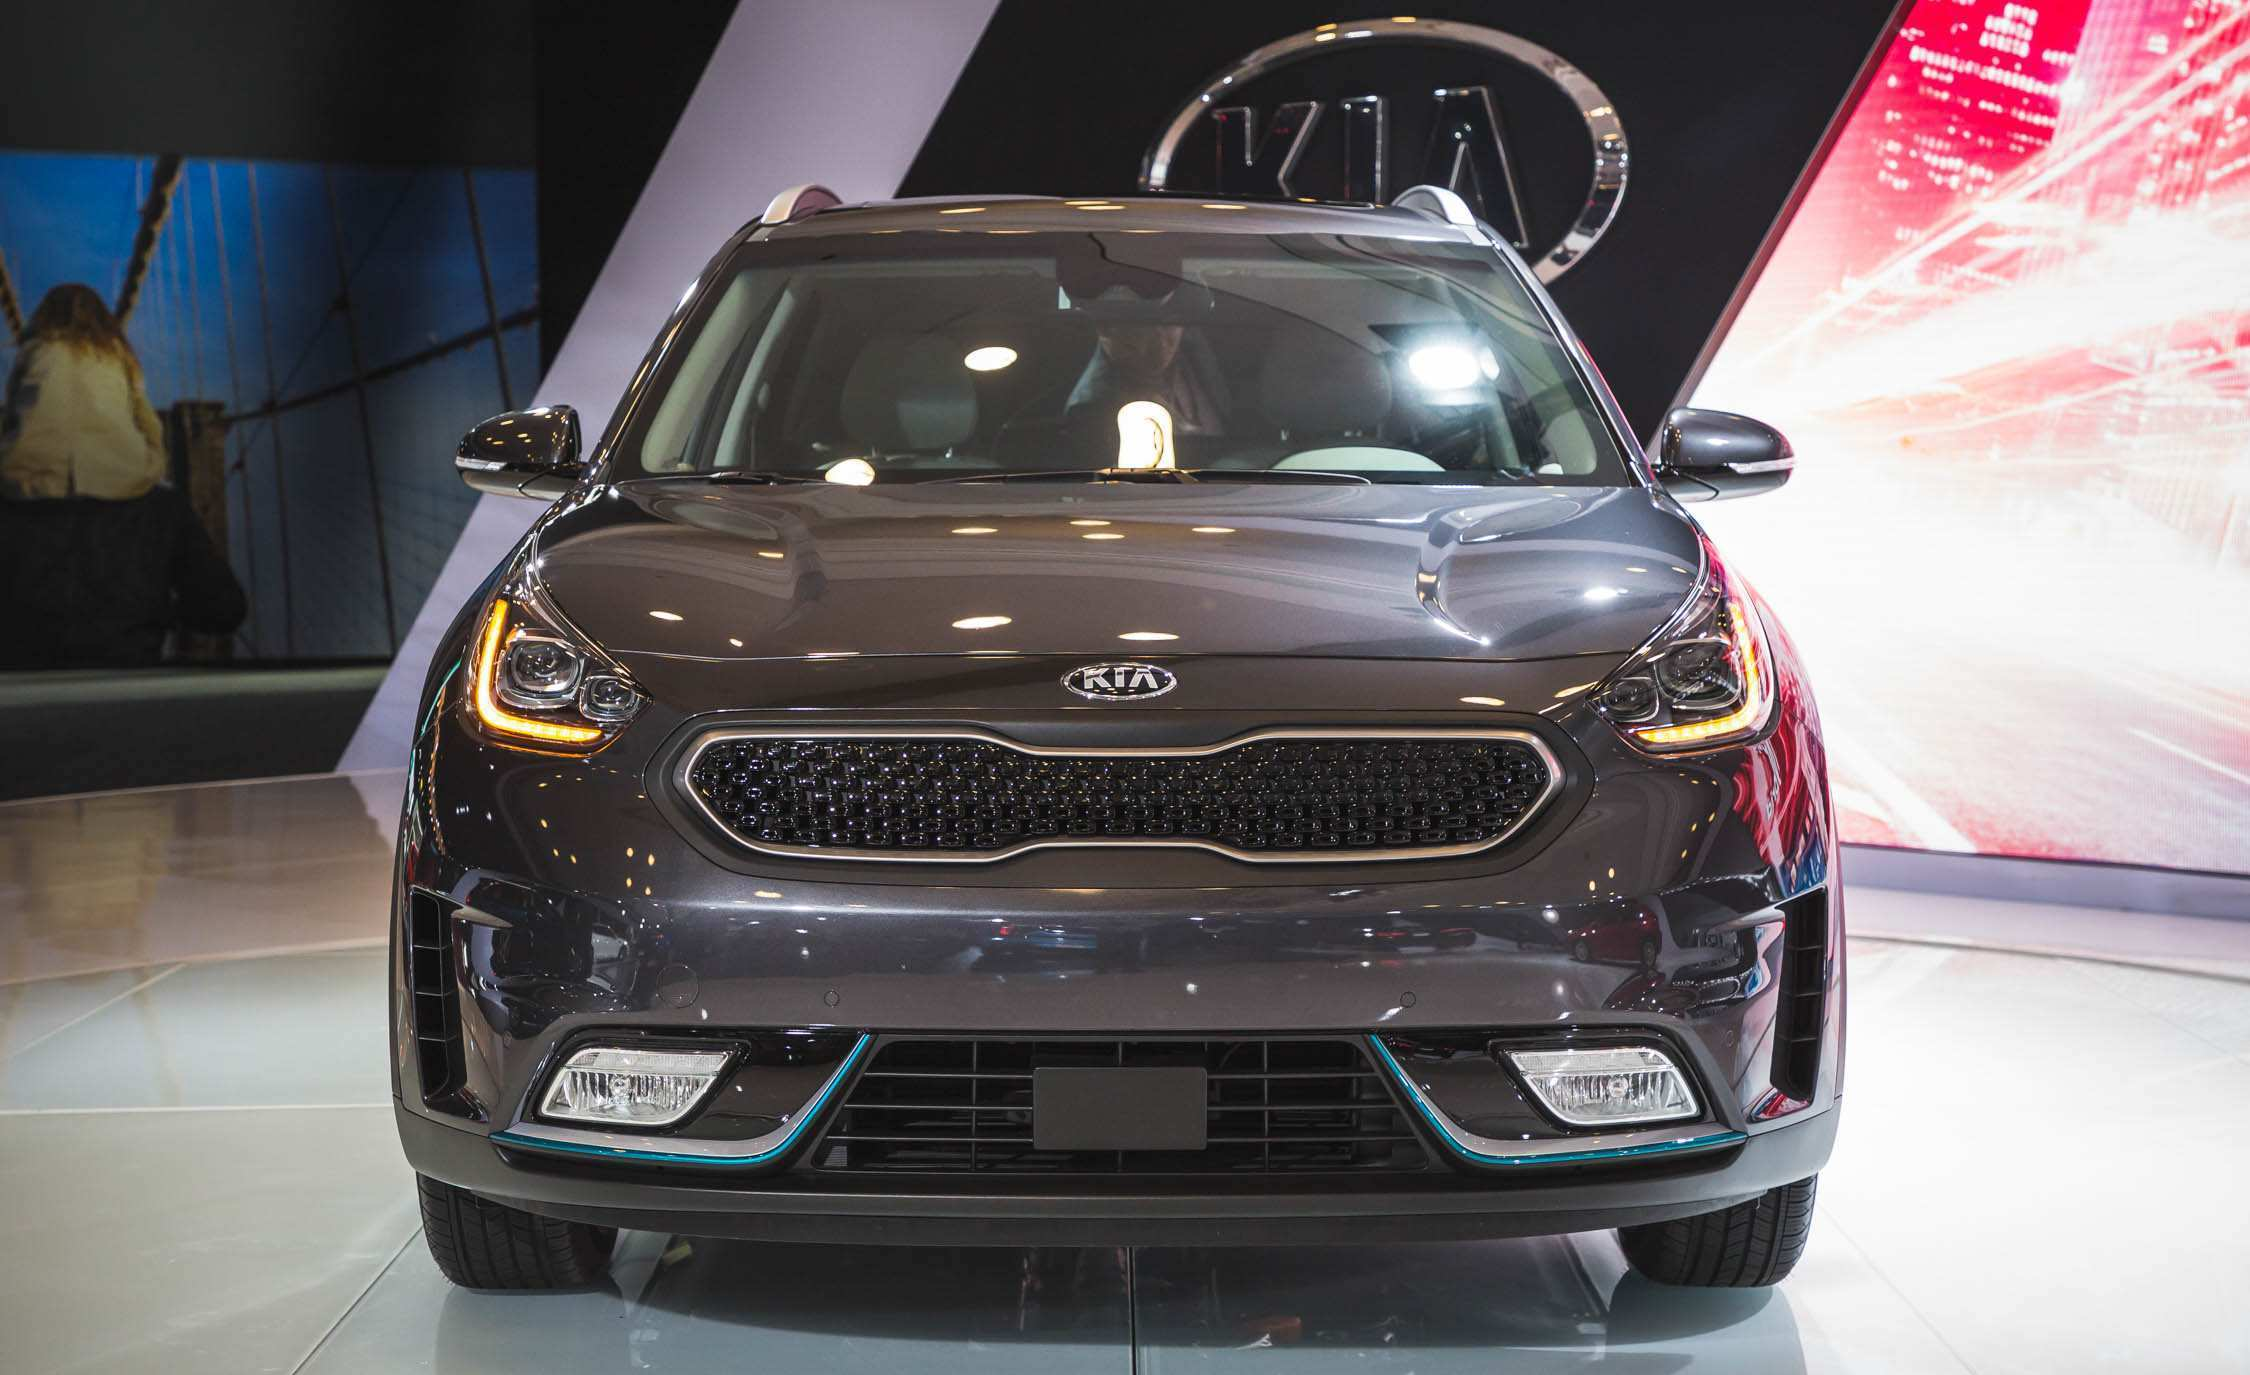 89 Great Kia Niro 2020 Canada Wallpaper for Kia Niro 2020 Canada